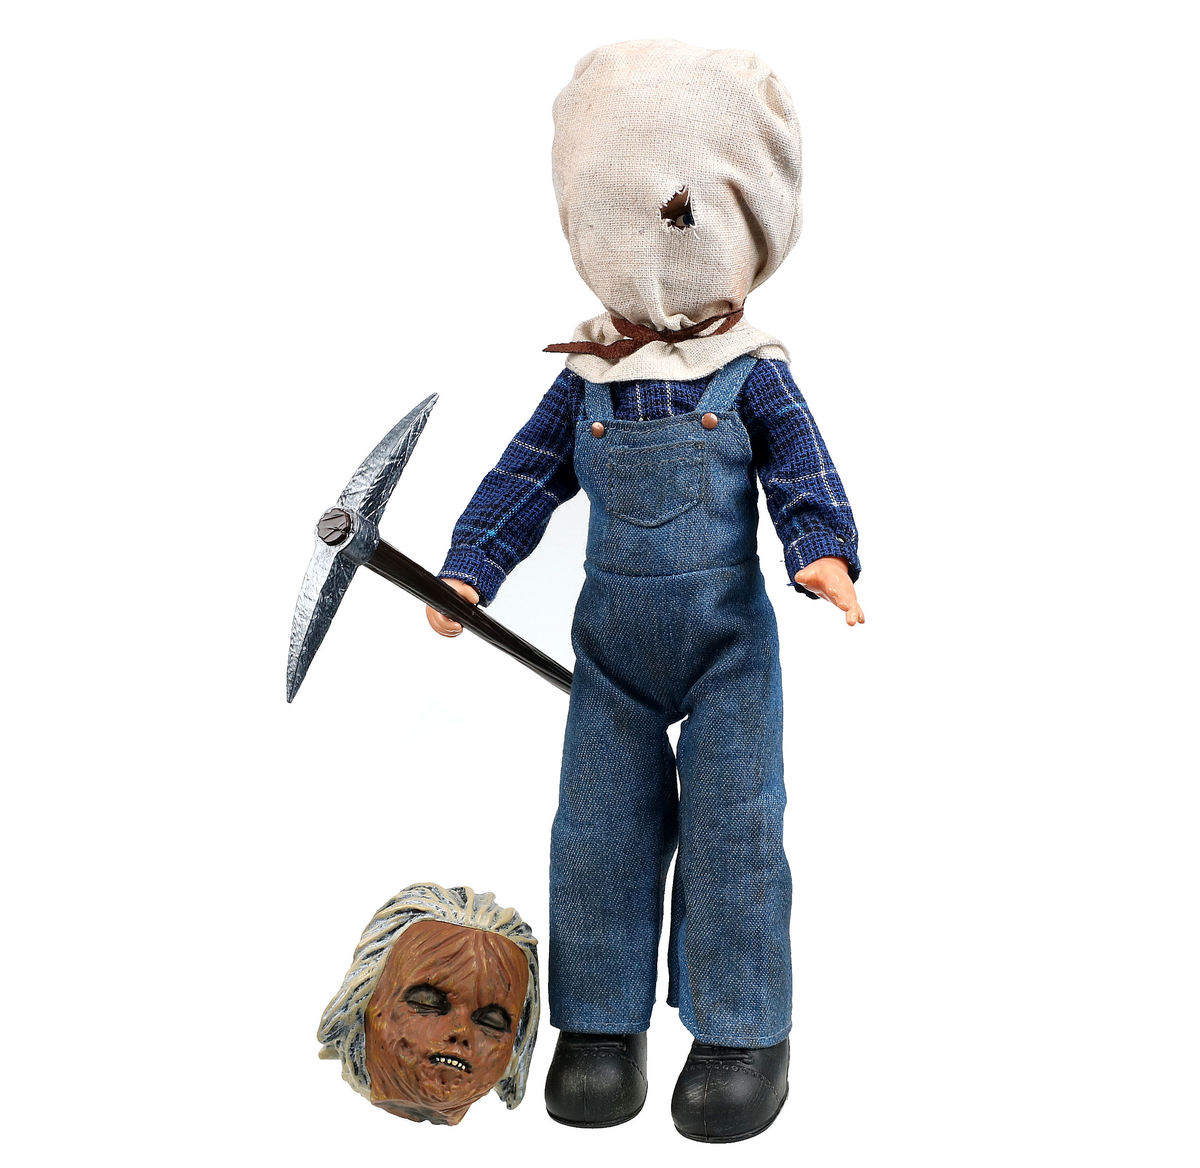 panenka Friday the 13th - Living Dead Dolls - Jason Voorhees Deluxe Edition - MEZ99570